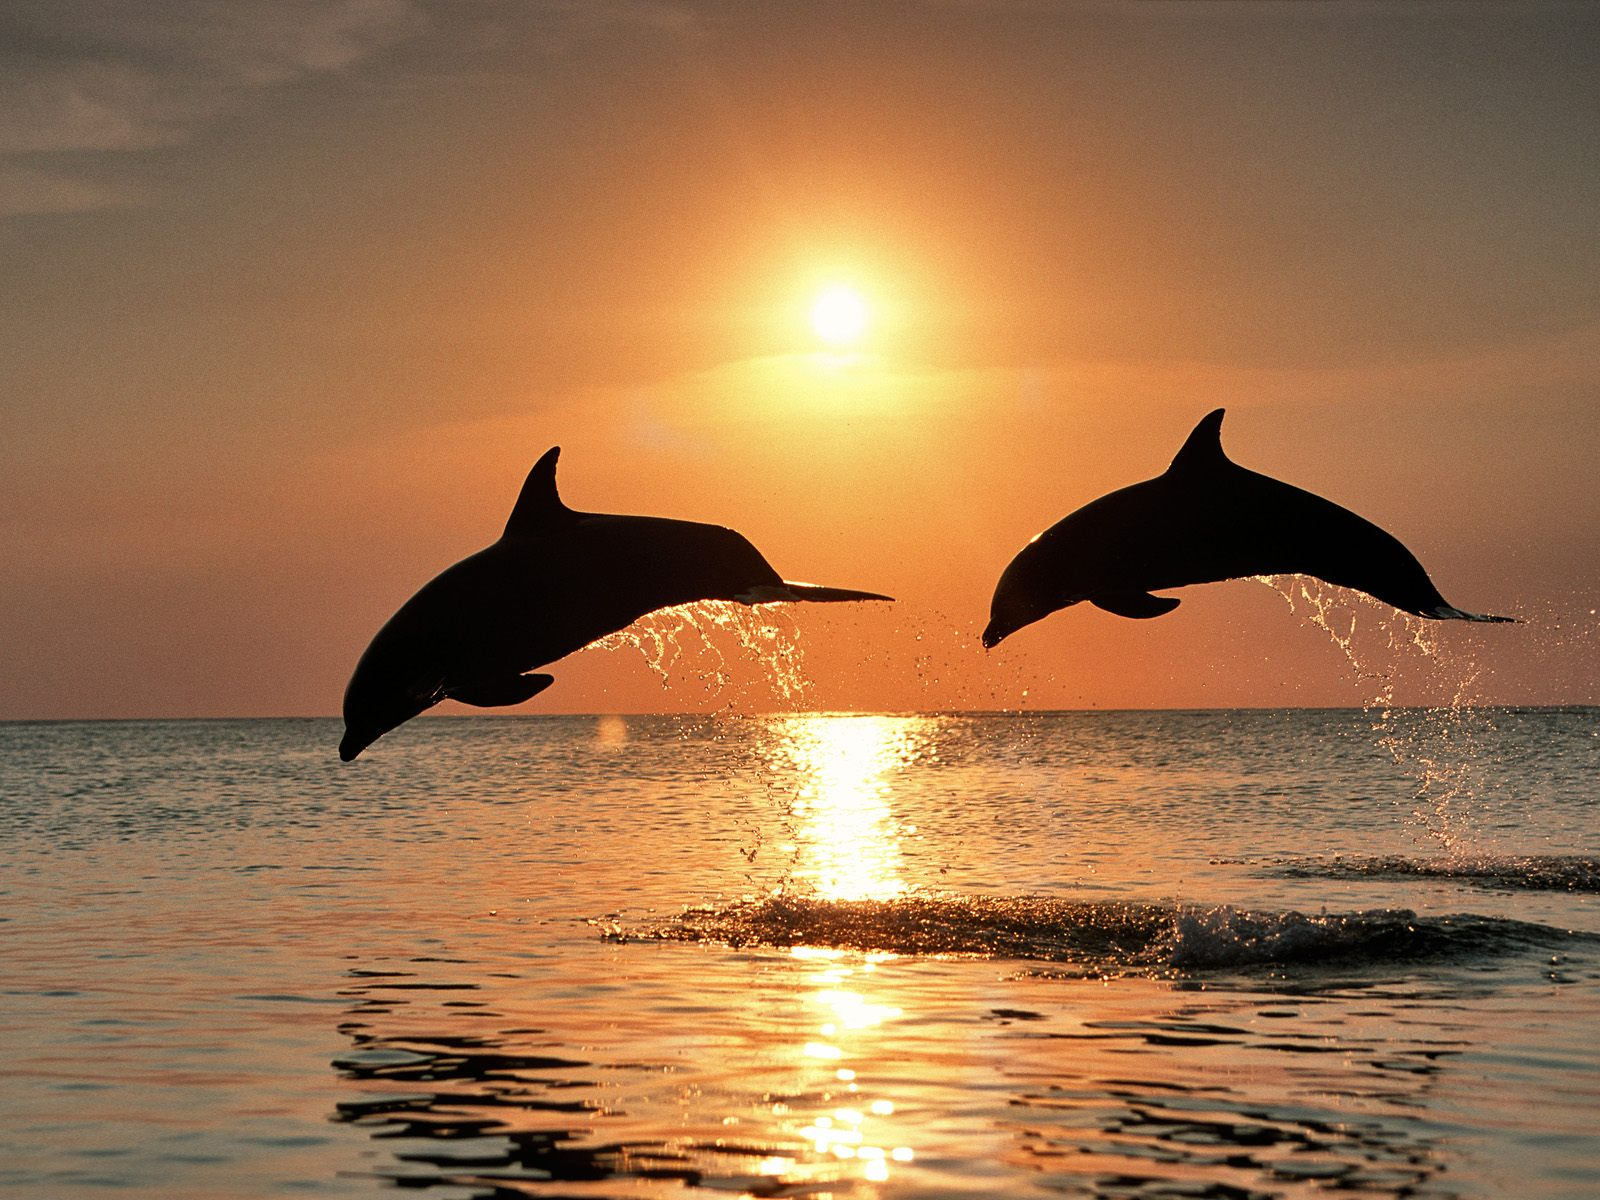 http://3.bp.blogspot.com/-qHMj6jOSh5A/TuAiE7HBHYI/AAAAAAAAAMY/jjfmaMqZU8M/s1600/The-best-top-desktop-dolphin-wallpapers-hd-dolphins-wallpaper-2+%25281%2529.jpg